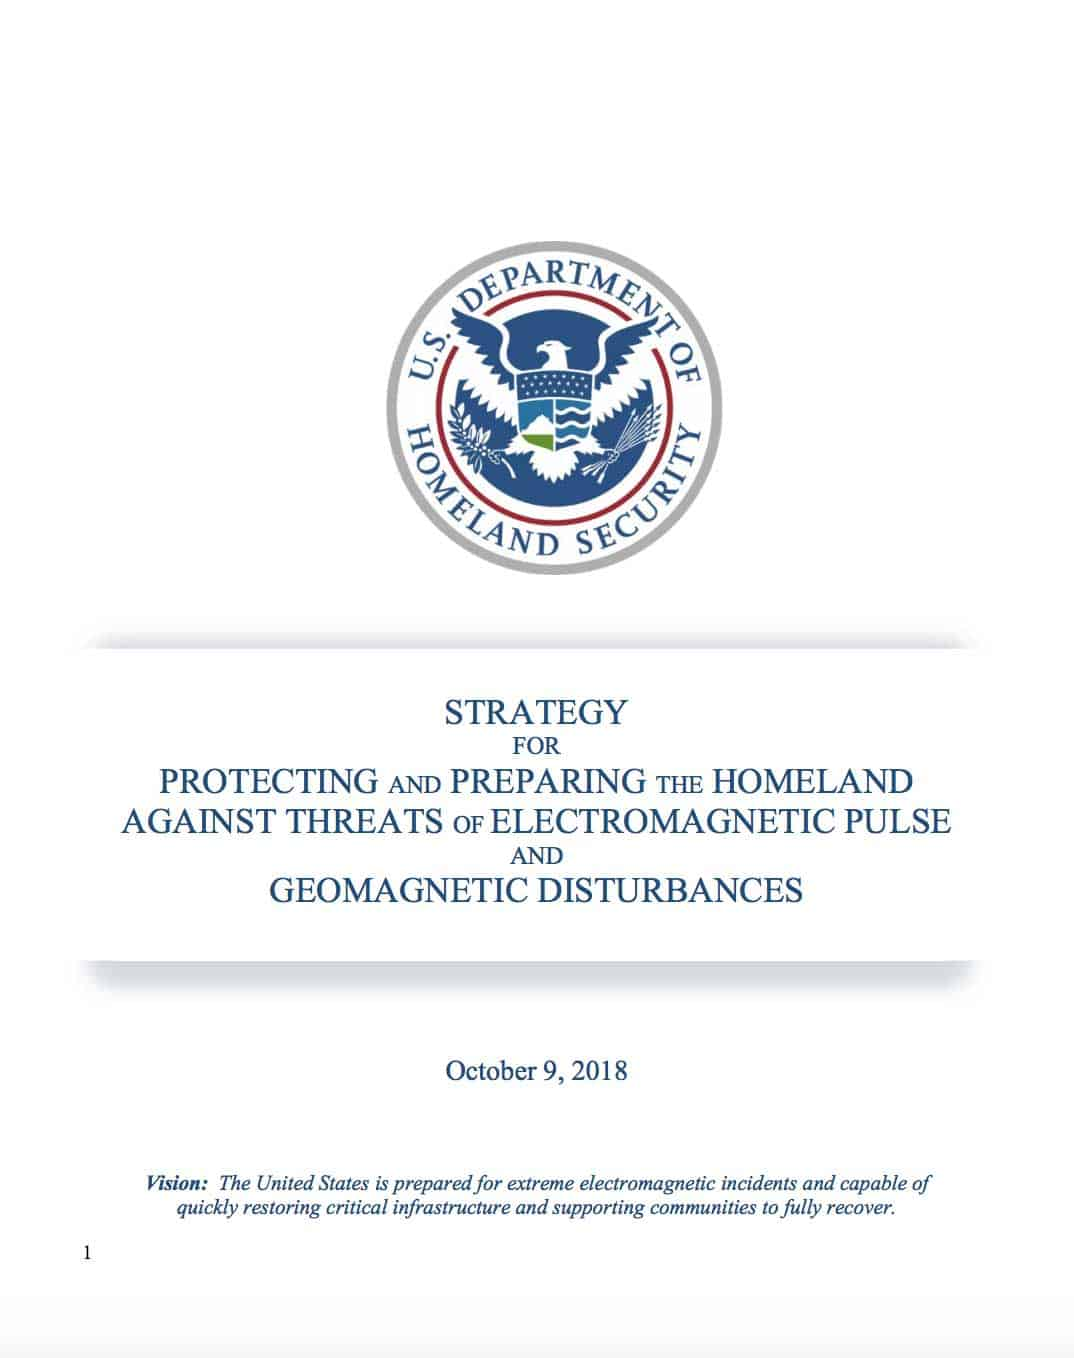 New DHS Electromagnetic Incident Protection Strategy